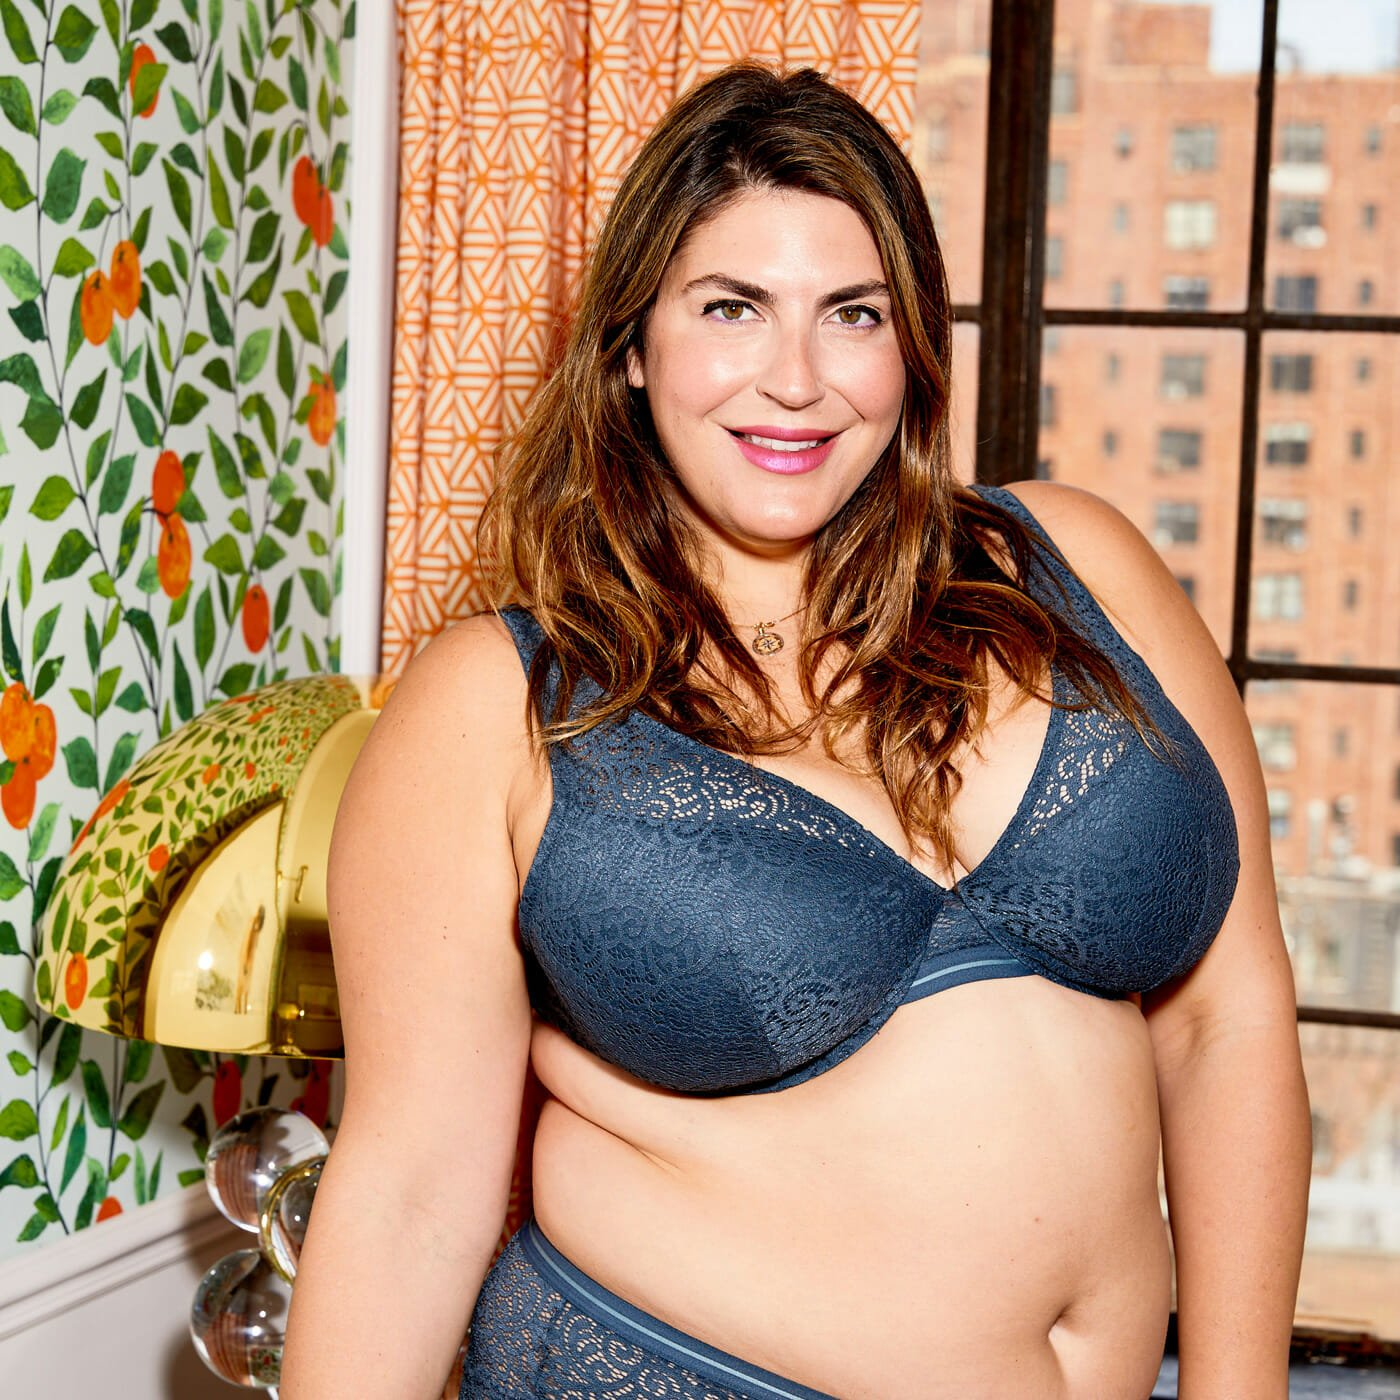 Bra big boobs pics The Best 9 Bras For Big Boobs According To People With You Guessed It Big Boobs